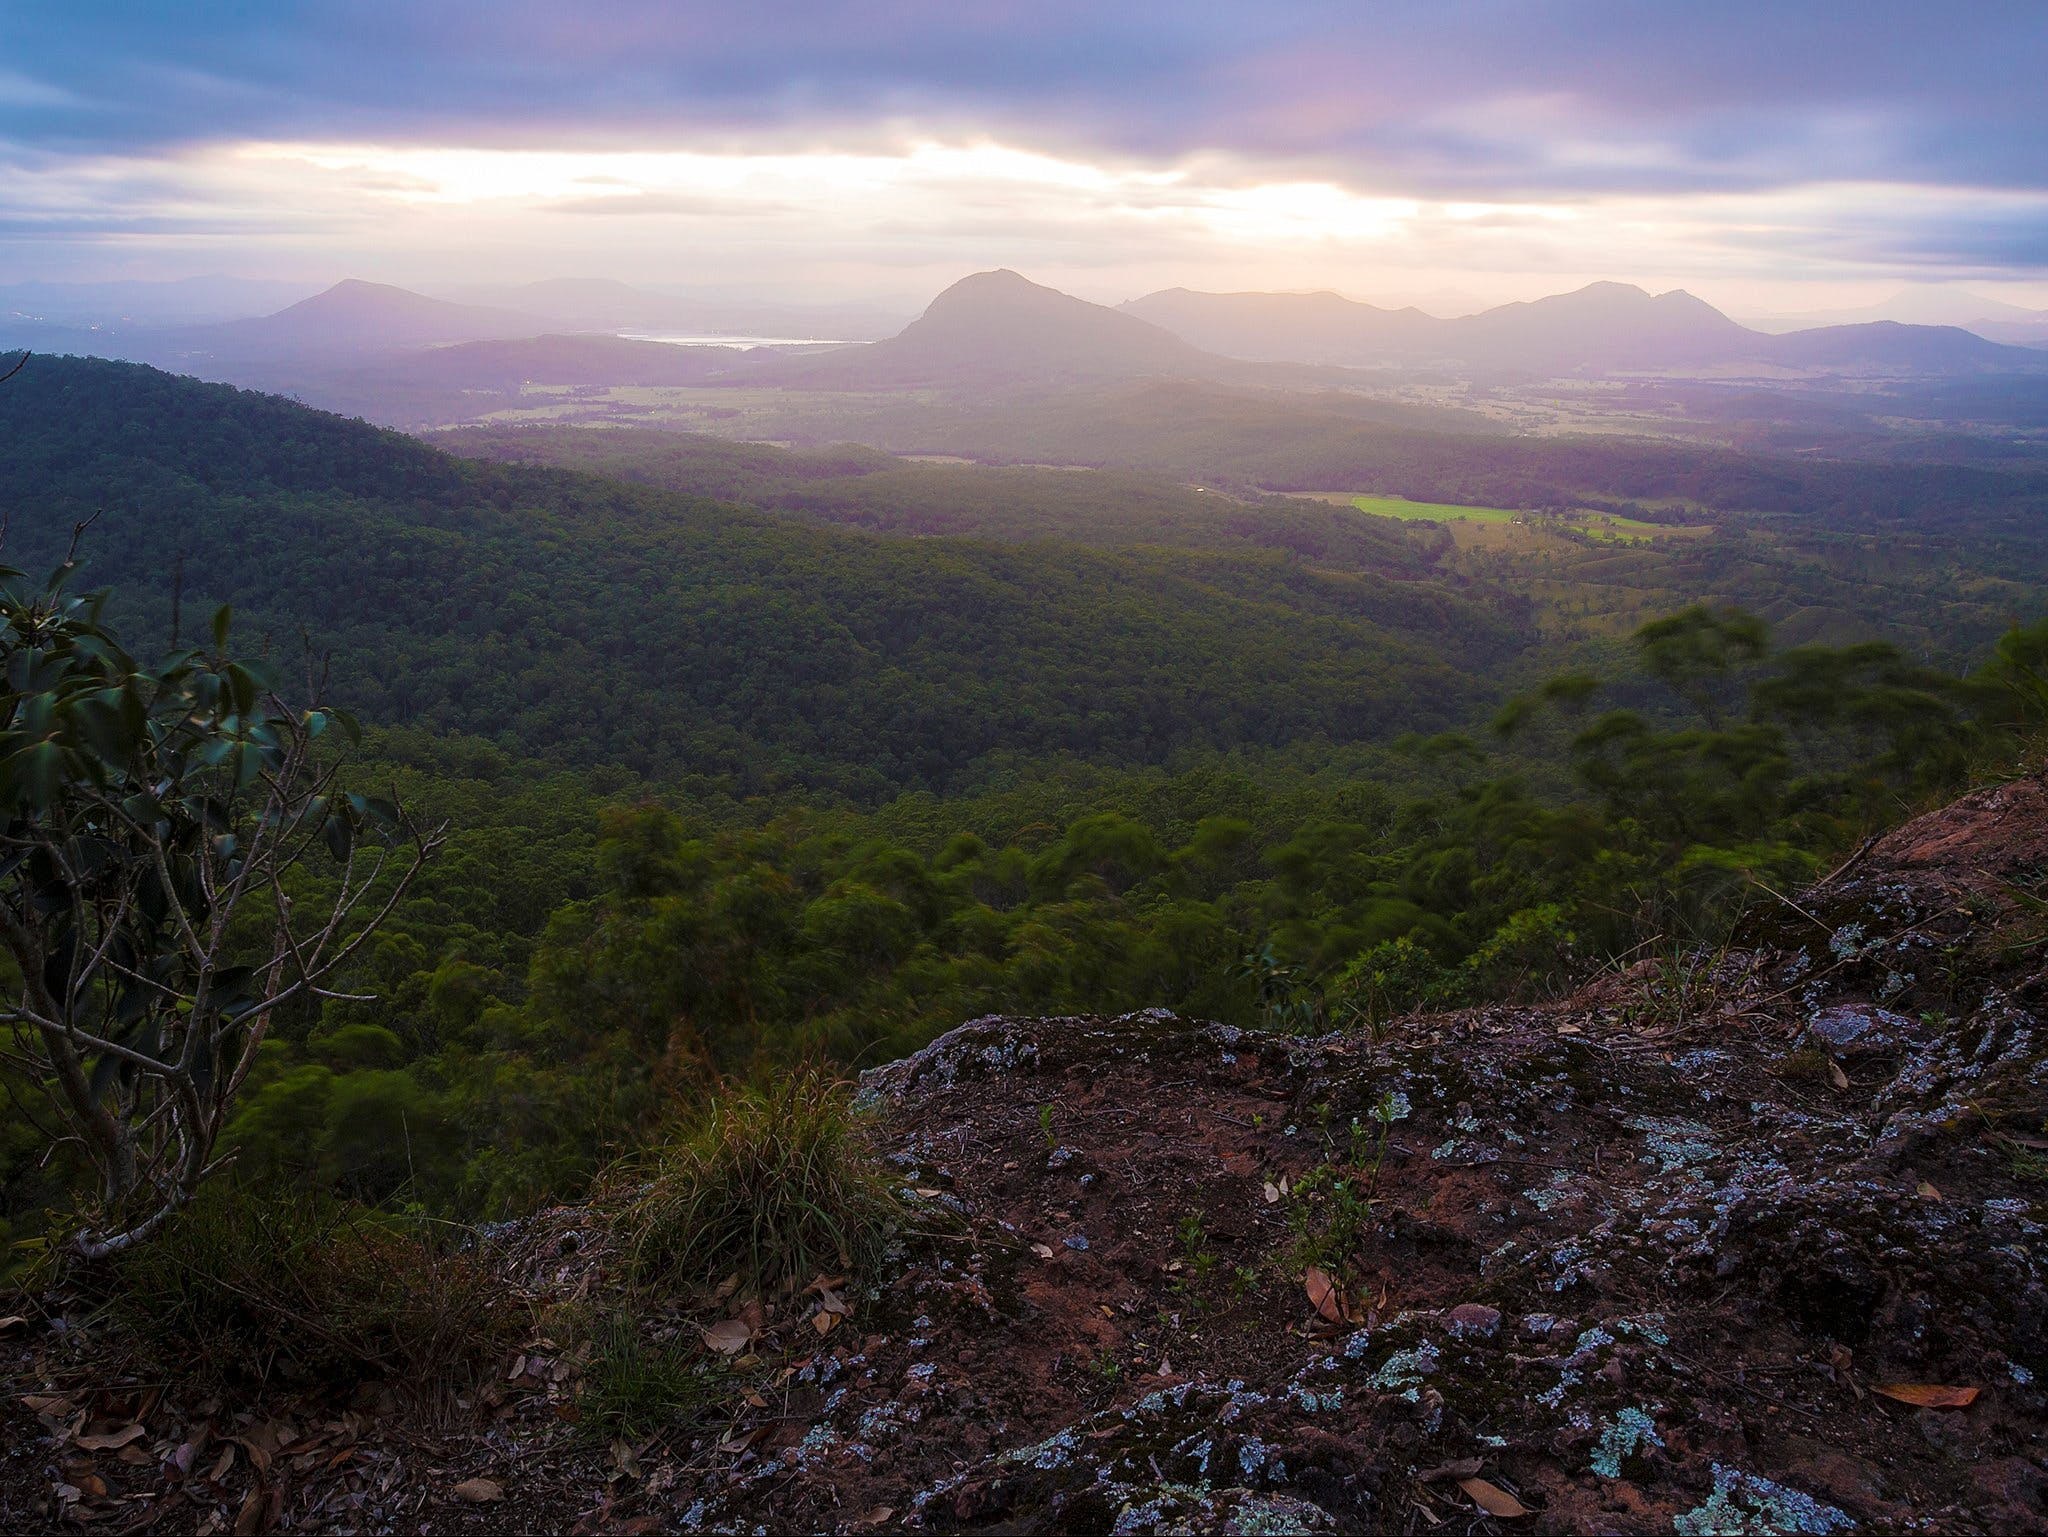 Cunninghams Gap and Spicers Gap Main Range National Park - Tweed Heads Accommodation